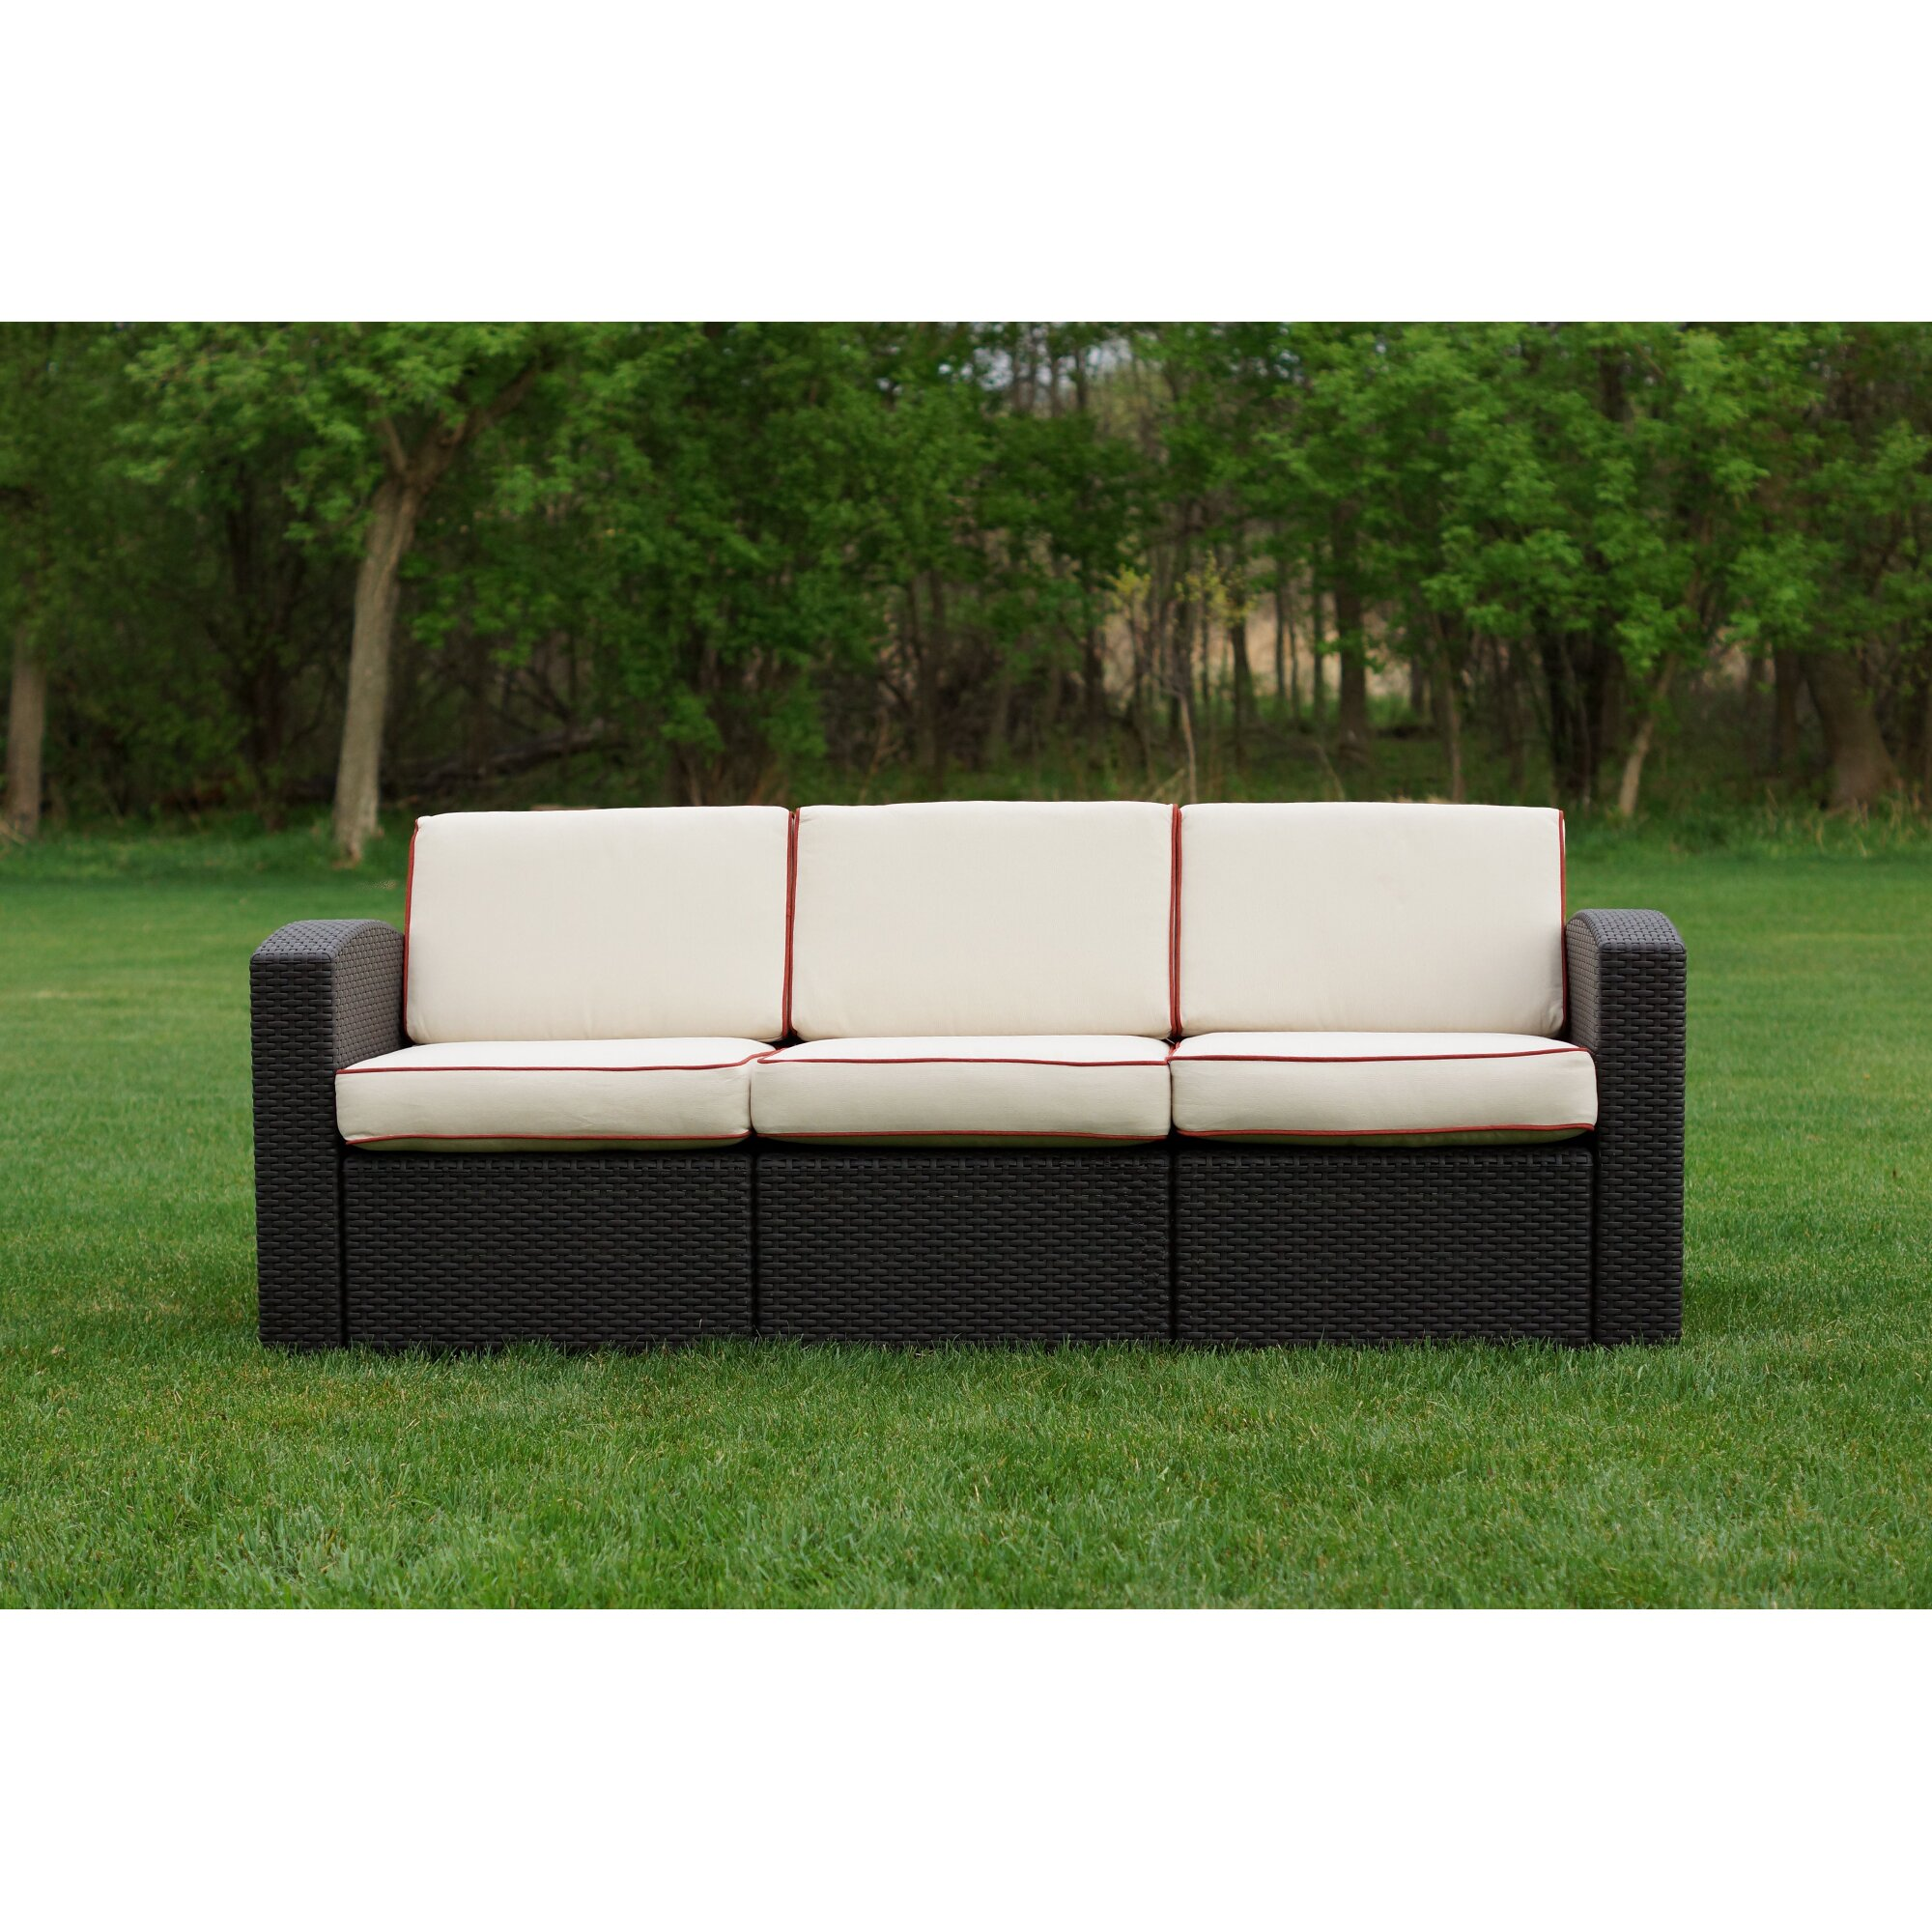 Patio Furniture Loveseat Cushions: Brayden Studio Loggins Patio Sofa With Cushion & Reviews